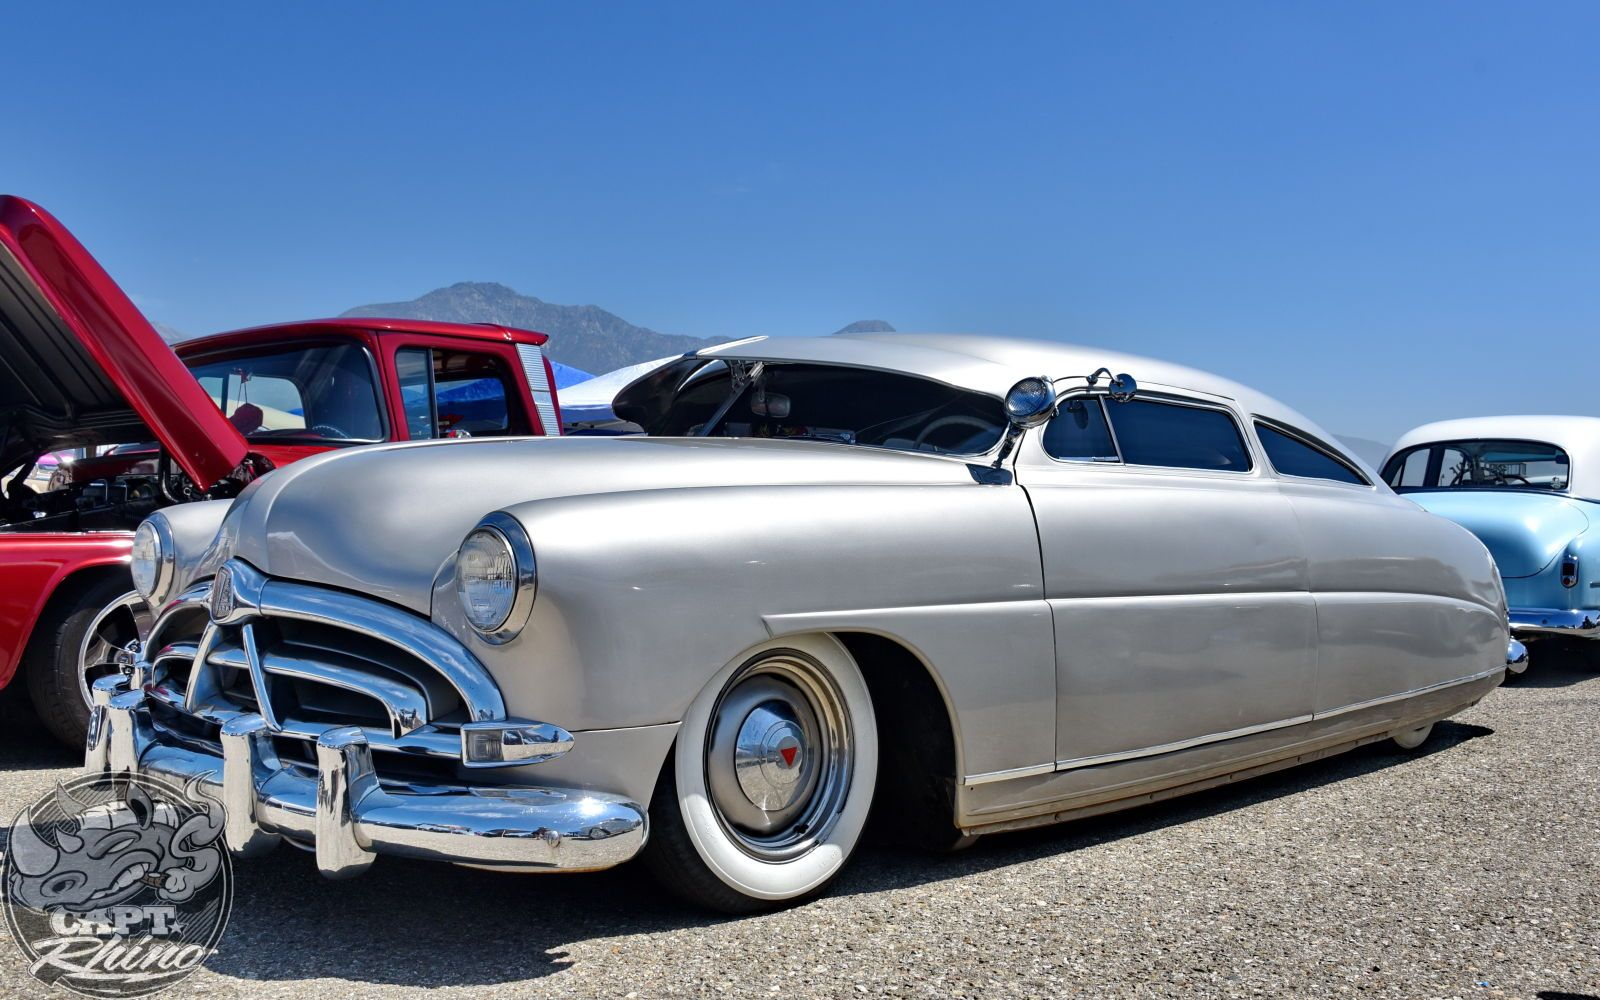 1951 hudson hornet chopped customs pinterest cars. Black Bedroom Furniture Sets. Home Design Ideas